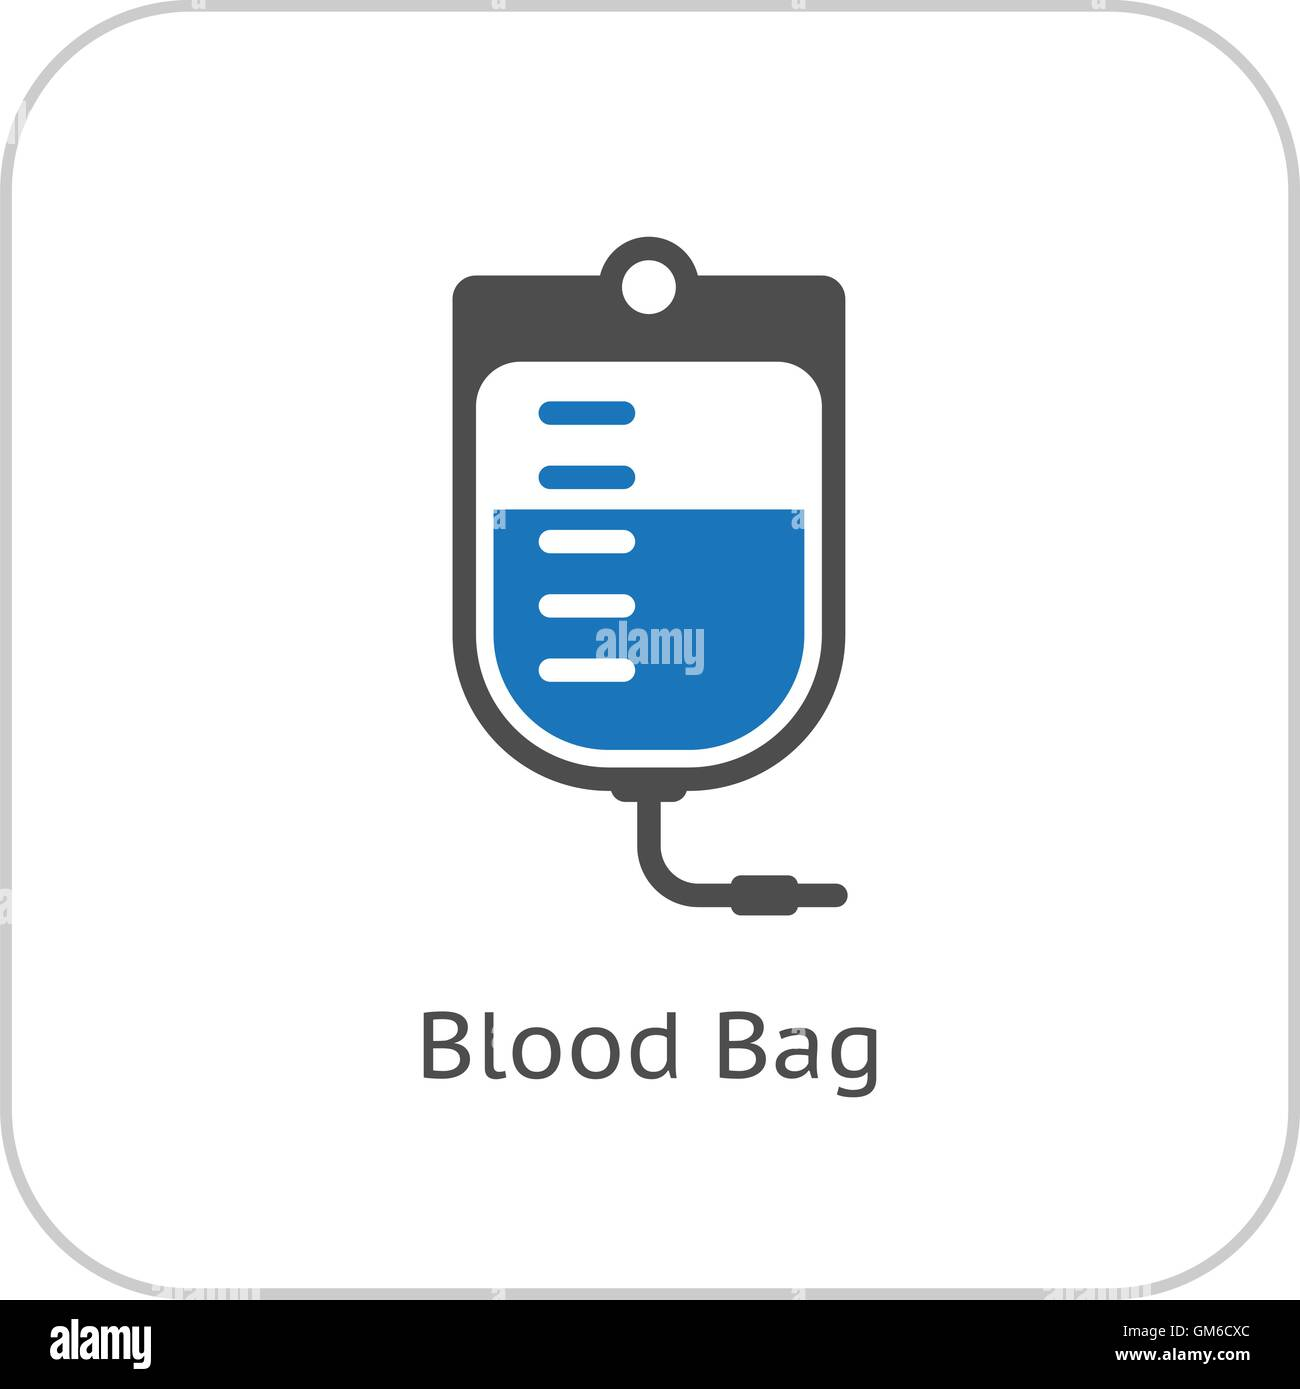 Blood Bag and Medical Services Icon. Flat Design. - Stock Vector